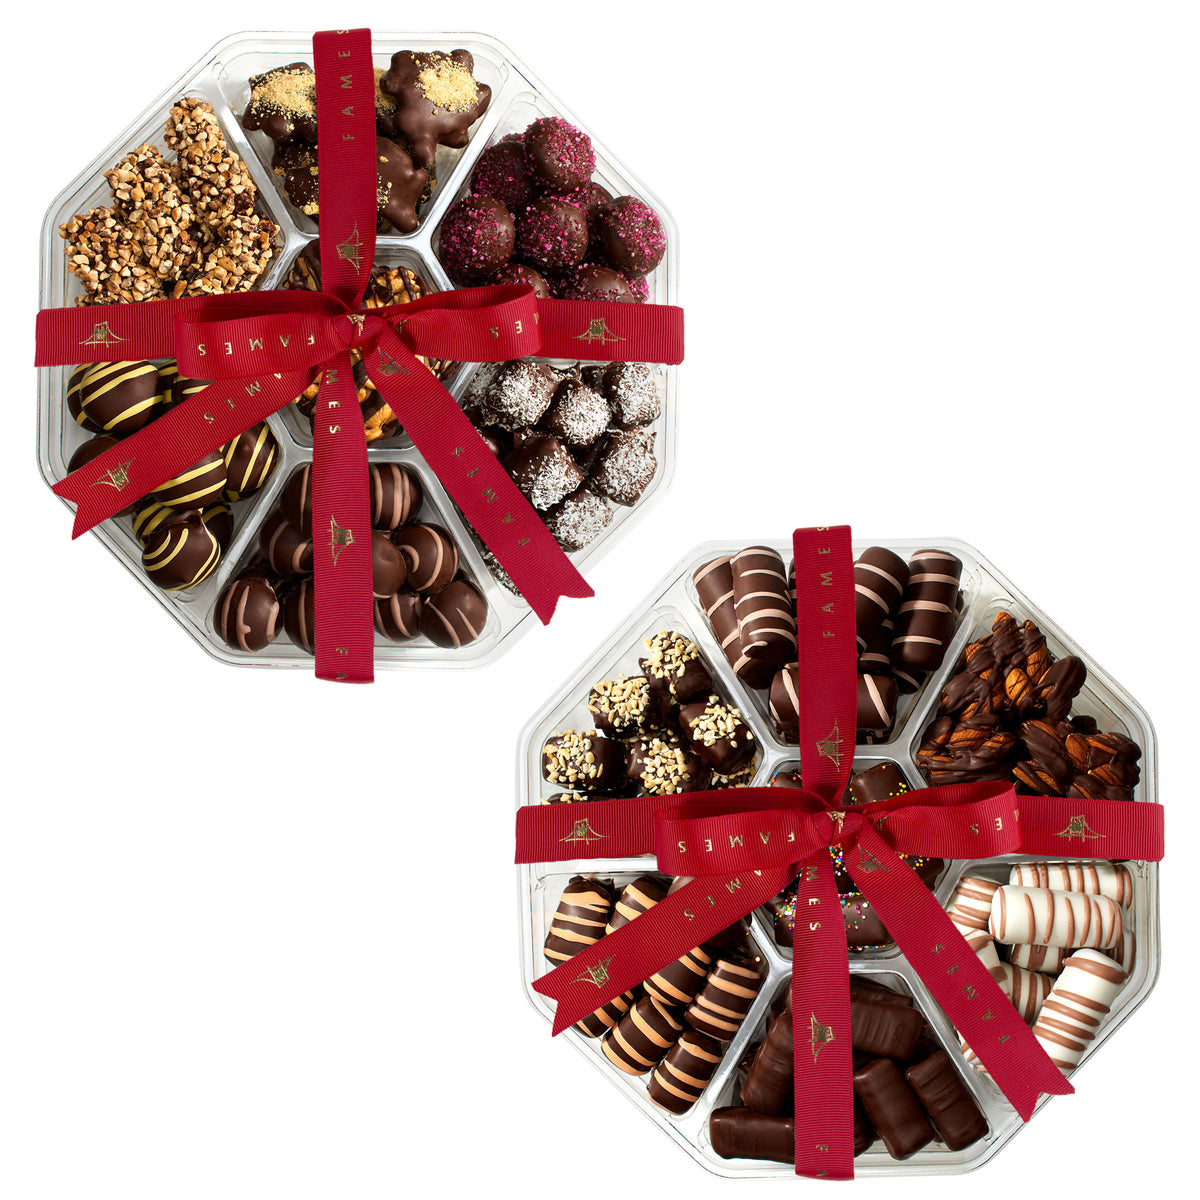 Gourmet Assorted Chocolate Gift Set - 5 Lb Kosher